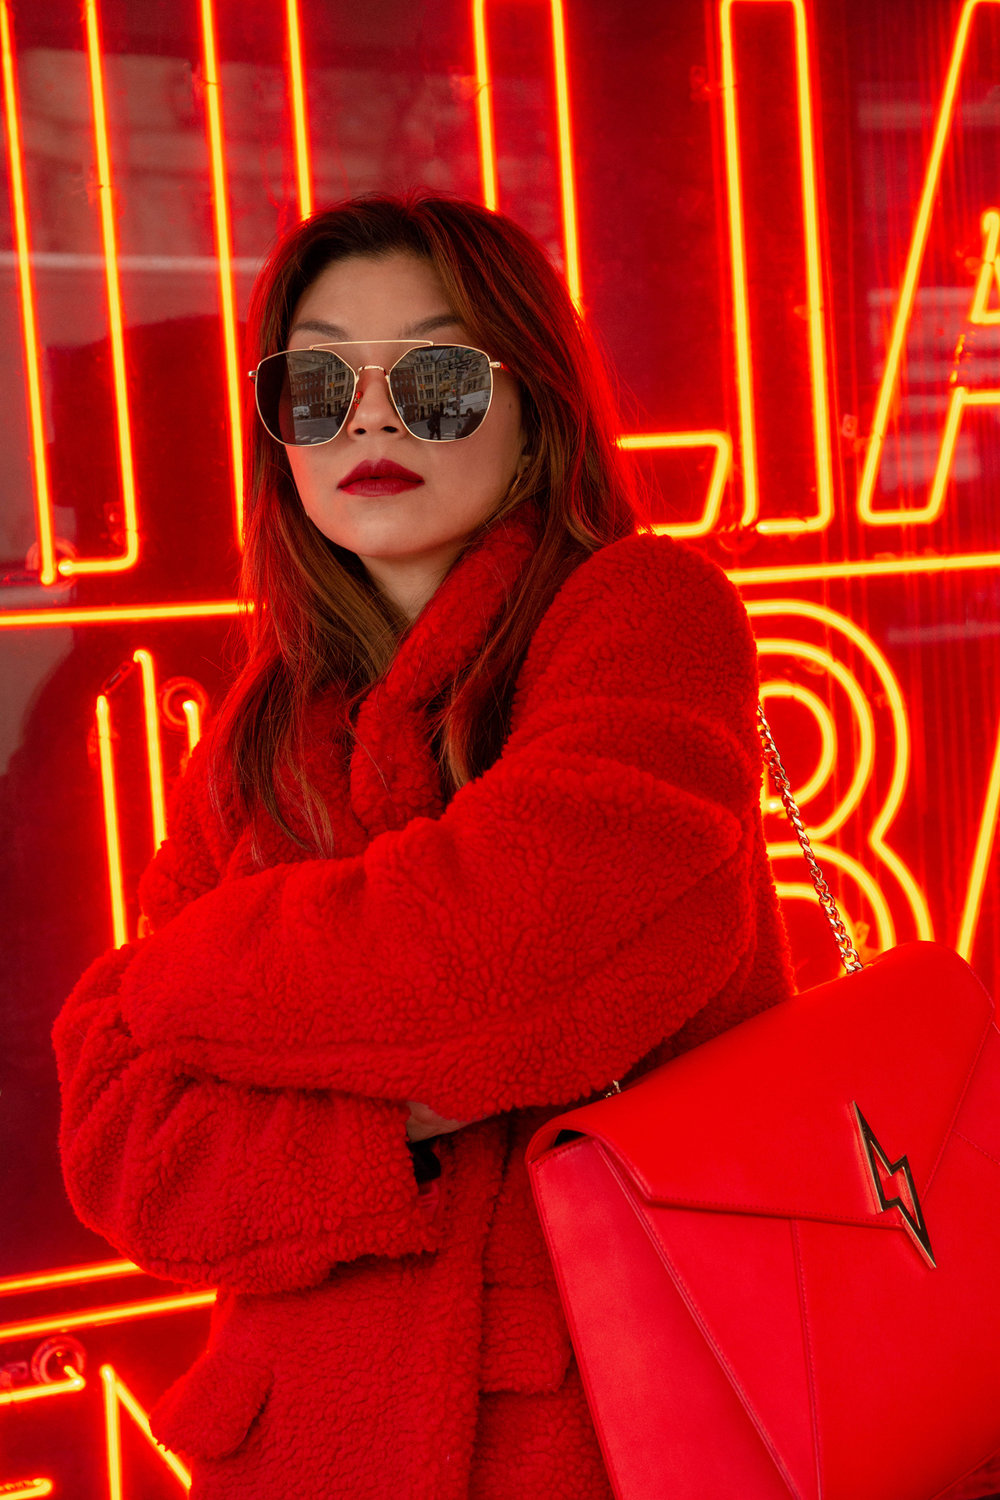 Red monochrome look